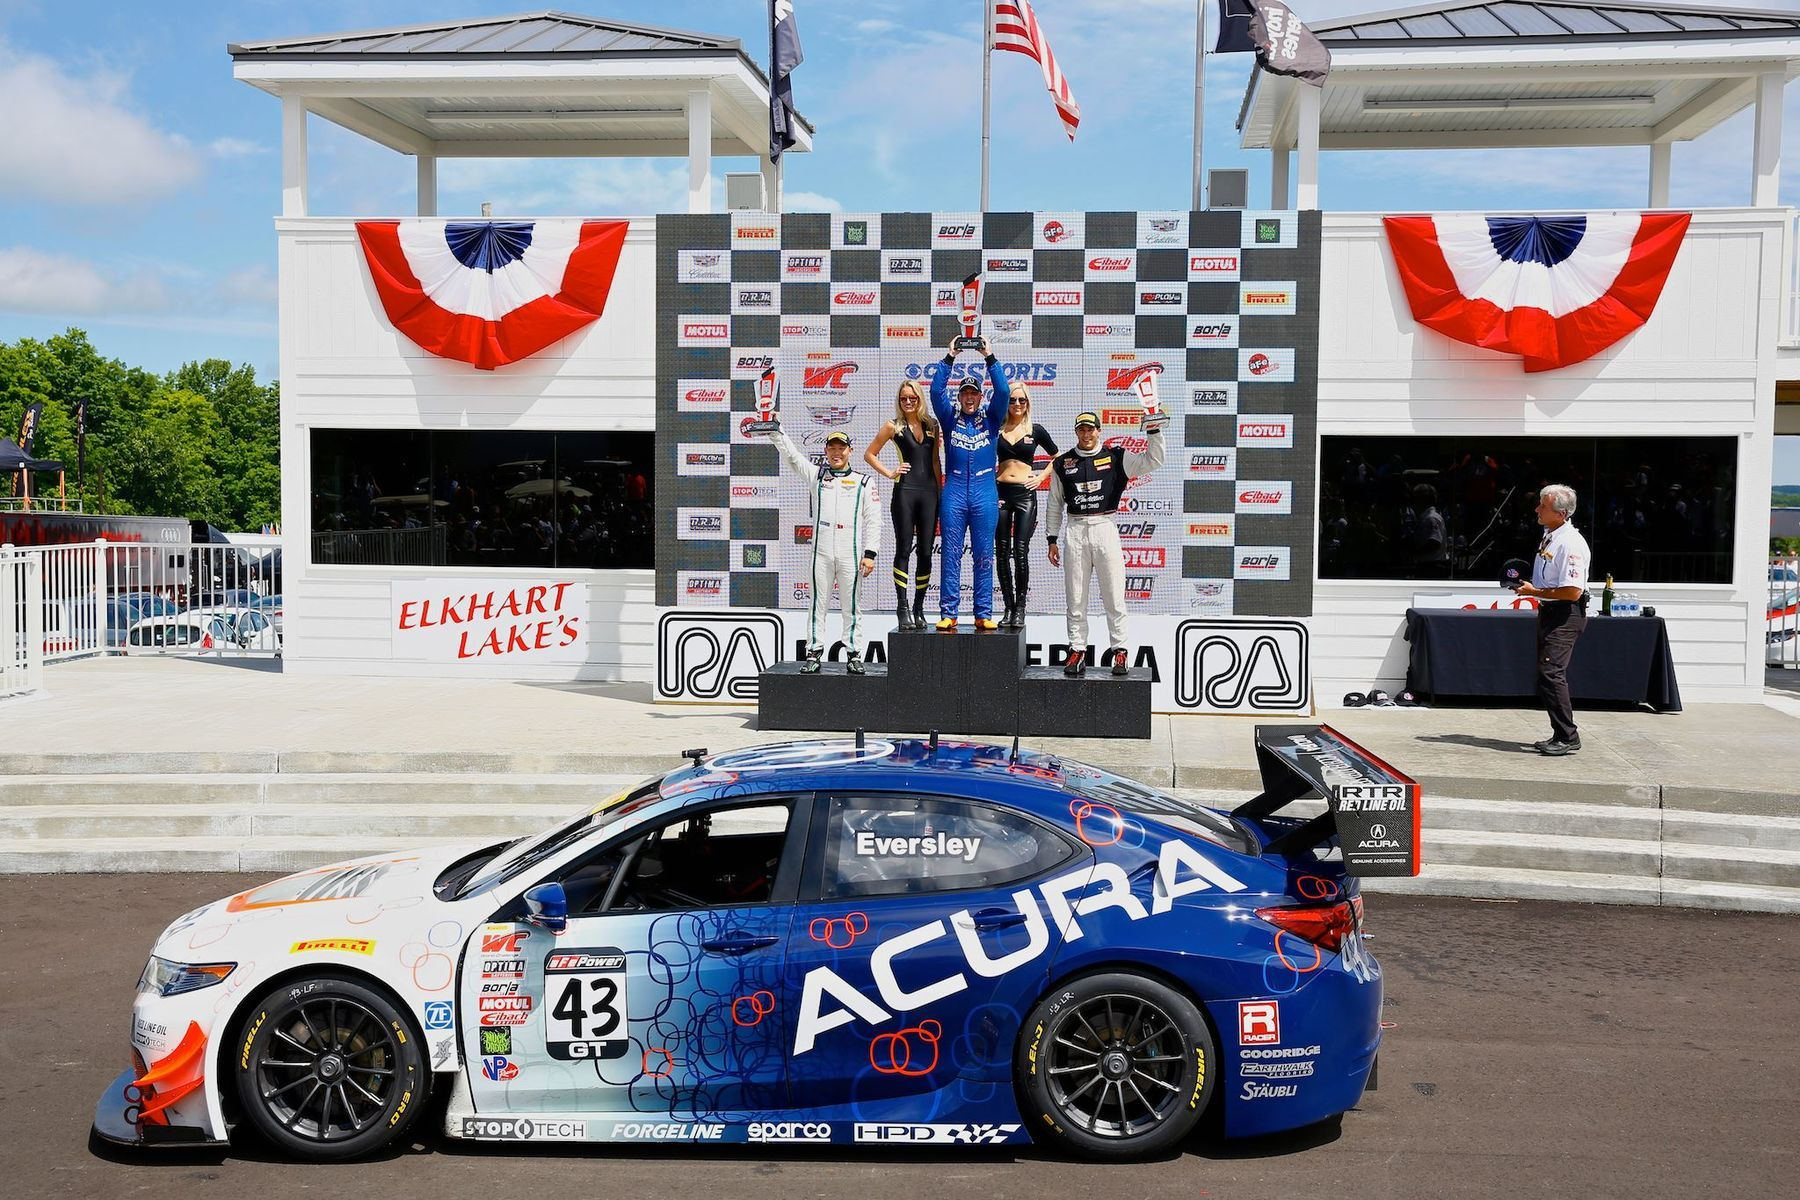 2016 Acura TLX | RealTime Racing Takes Forgeline GTD1 Wheels to Victory at Road America